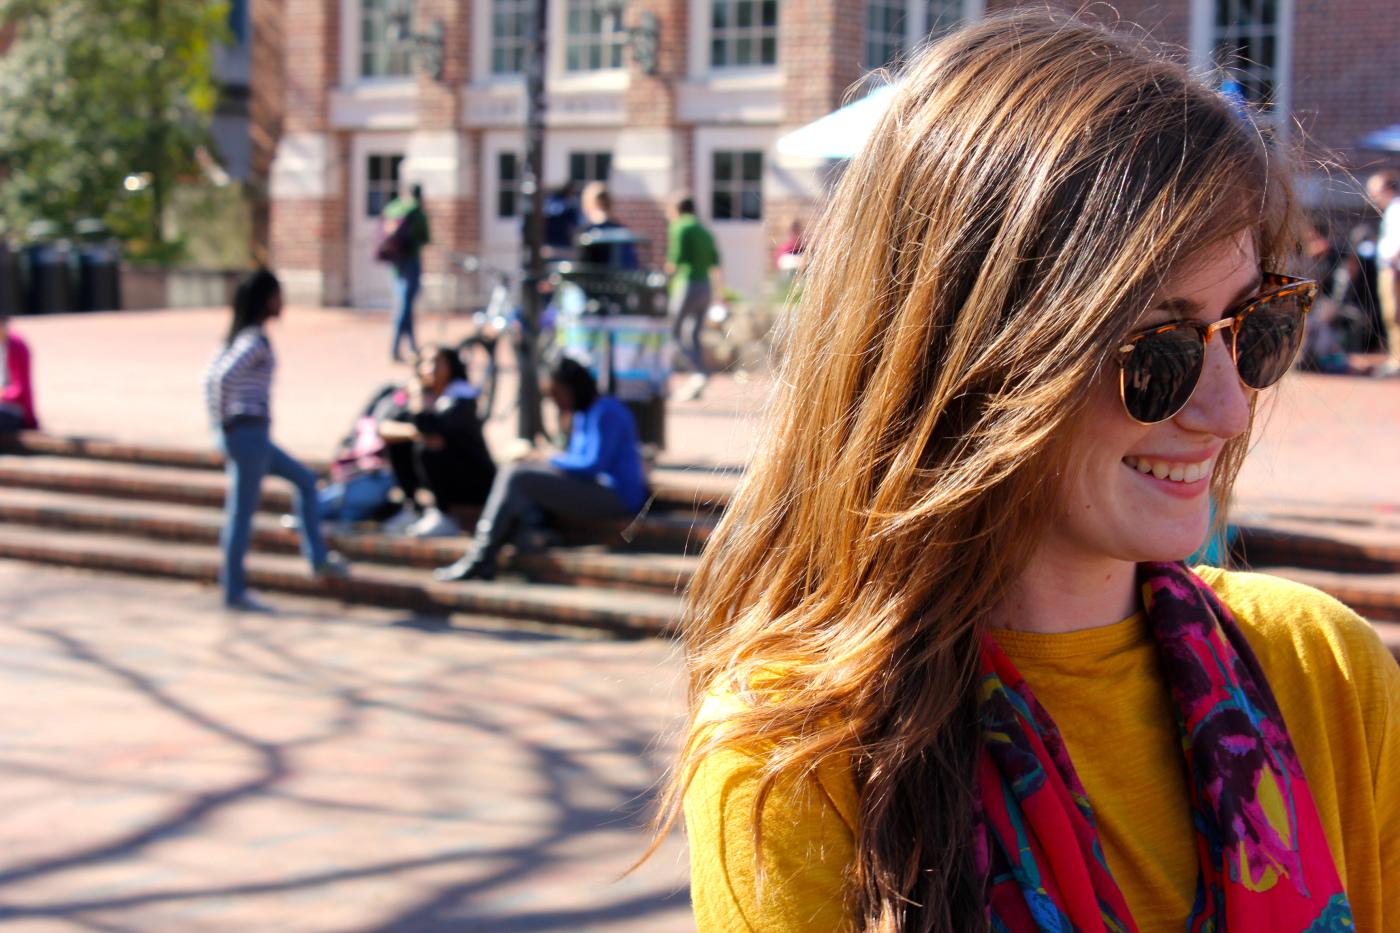 Sara C, a UNC Chapel Hill sophomore majoring in Journalism and Mass Communications wears a floral print pink/fuchsia scarf over a bright mustard yellow sweater, blue jeans and light brown suede chukka boots